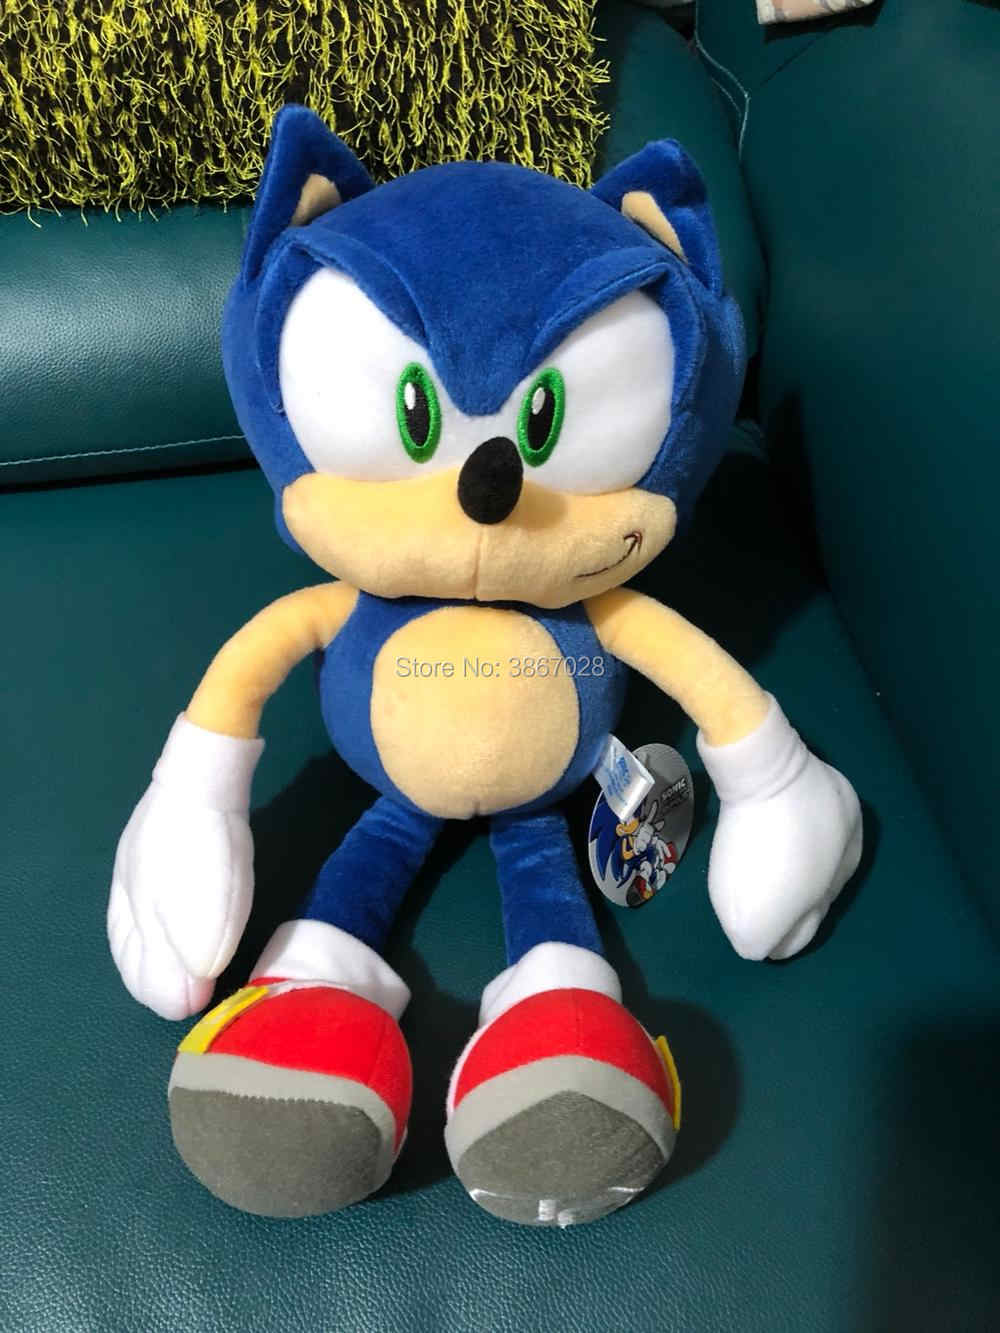 New Sonic Boom Stuffed Plush toy doll 14inches The Hedgehog